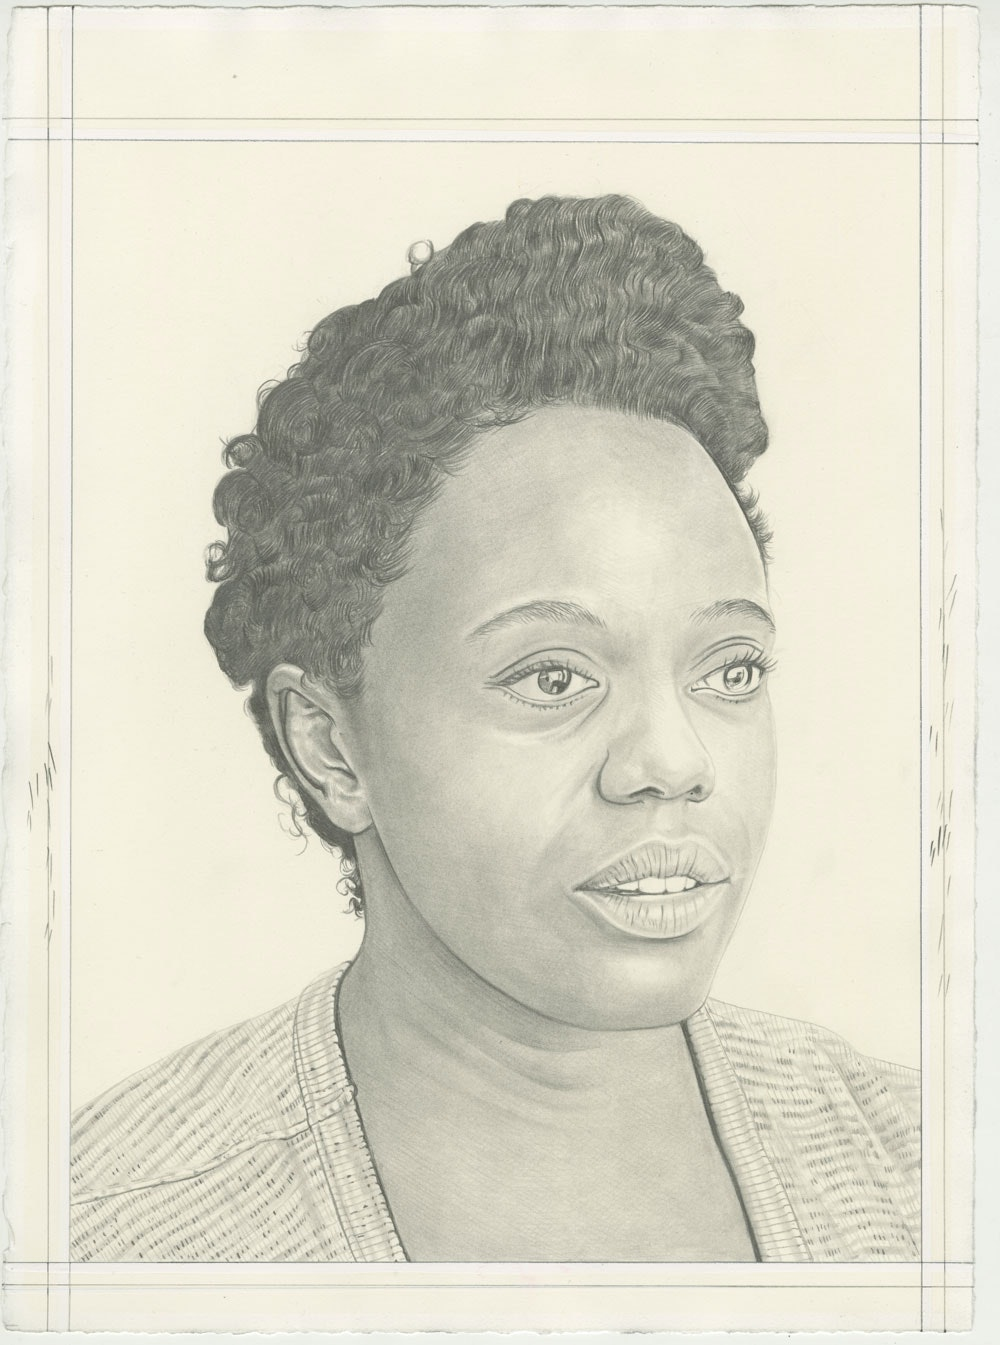 Portrait of Leslie Hewitt, pencil on paper by Phong H. Bui.